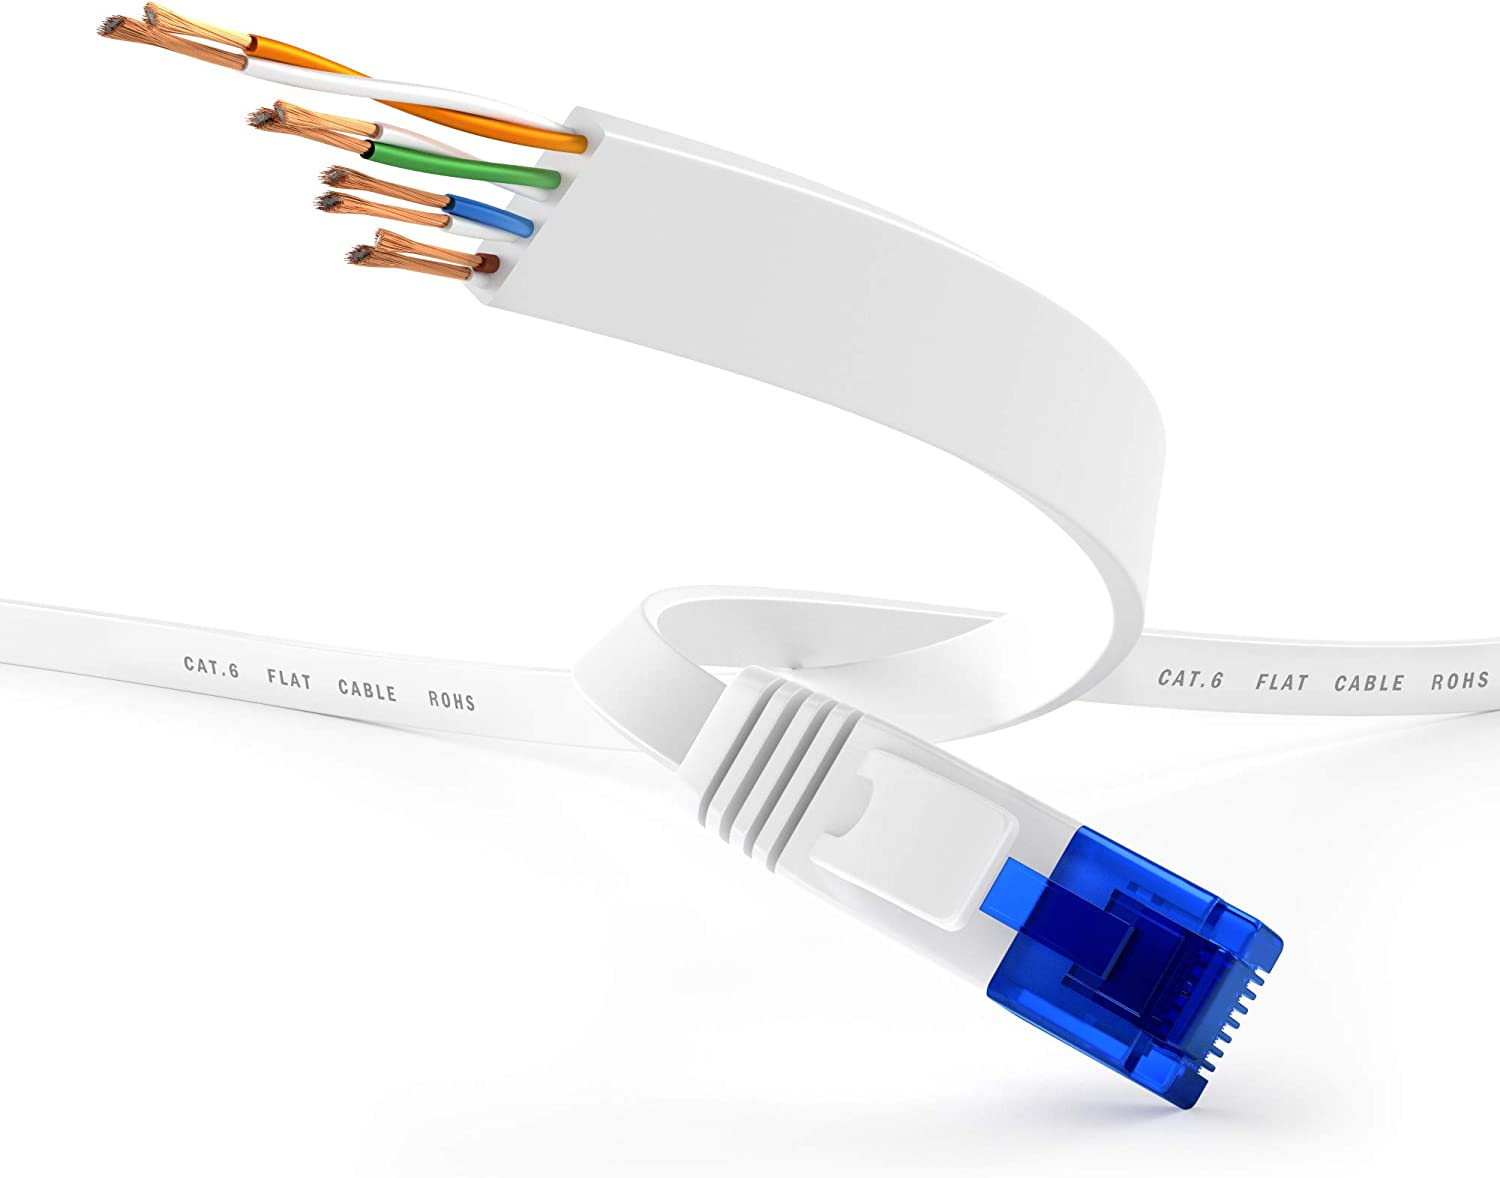 KabelDirekt transfers Gigabit Internet Speed /& is Compatible with Gigabit Networks, Switches, Routers, Modems with RJ45 Port, White, Blue LAN /& Patch Cable 25 feet Flat Ethernet Network